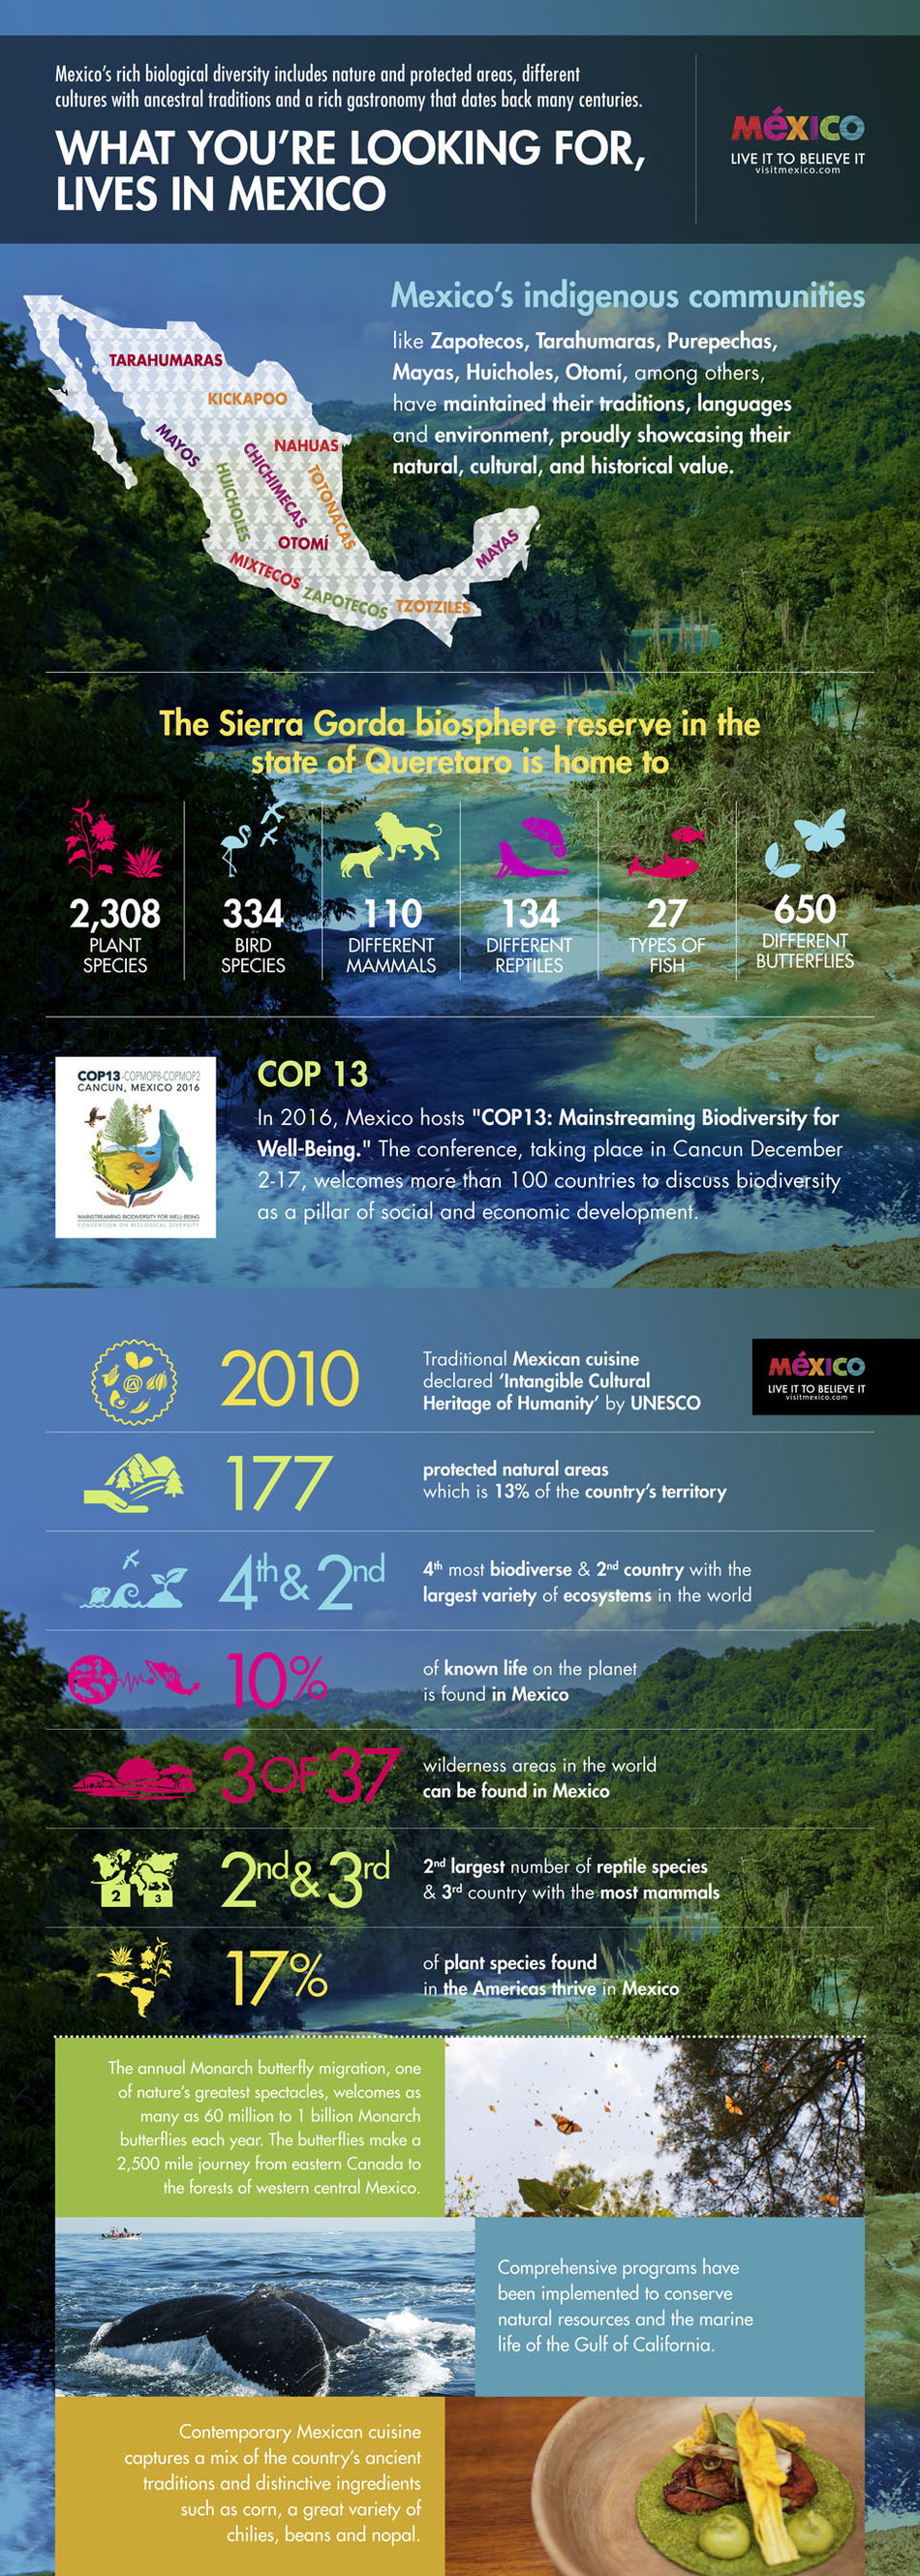 Mexico, for a more sustainable world: 13th Conference of the Parties to the United Nations Convention on Biological Diversity